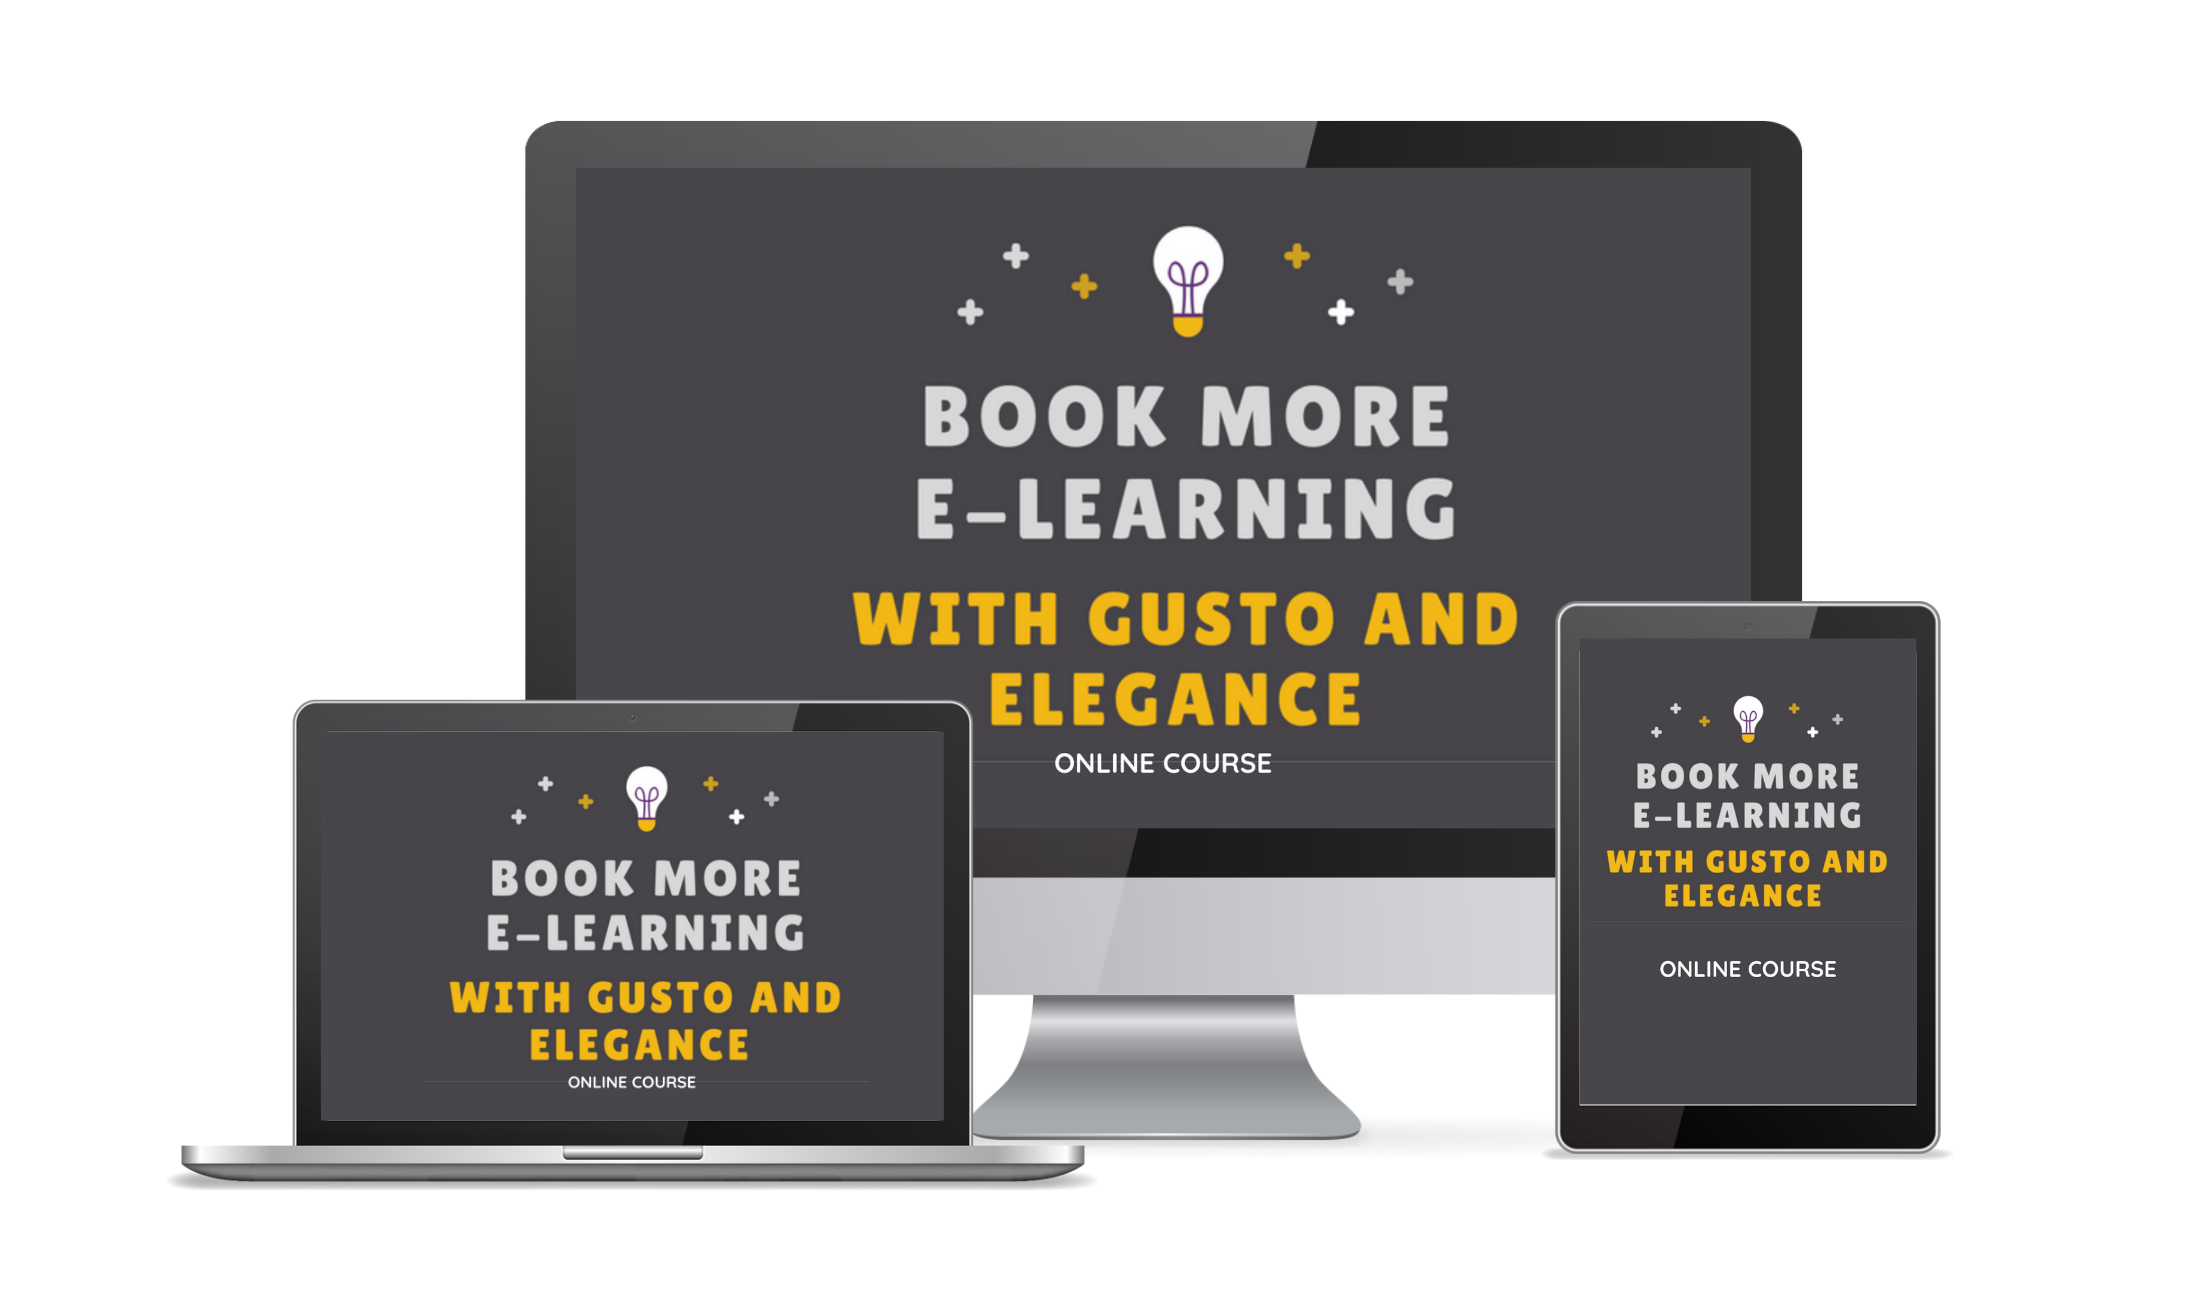 Book More Elearning